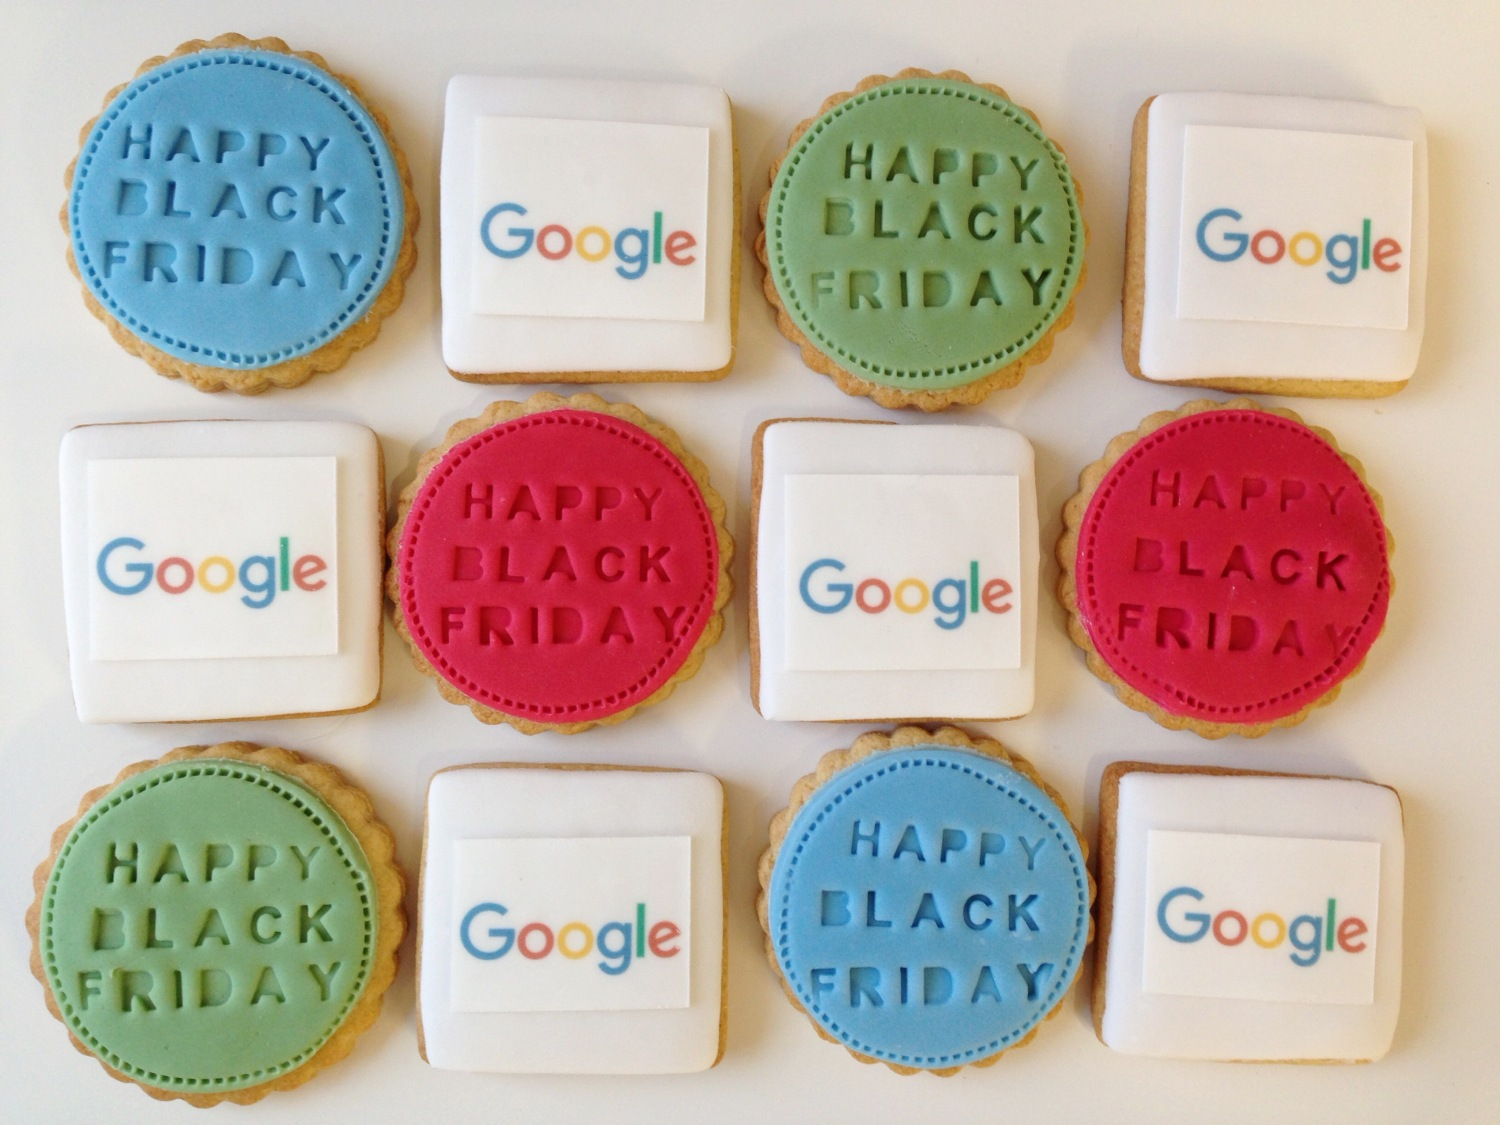 google-logo-biscuits-black-friday-nila-holden